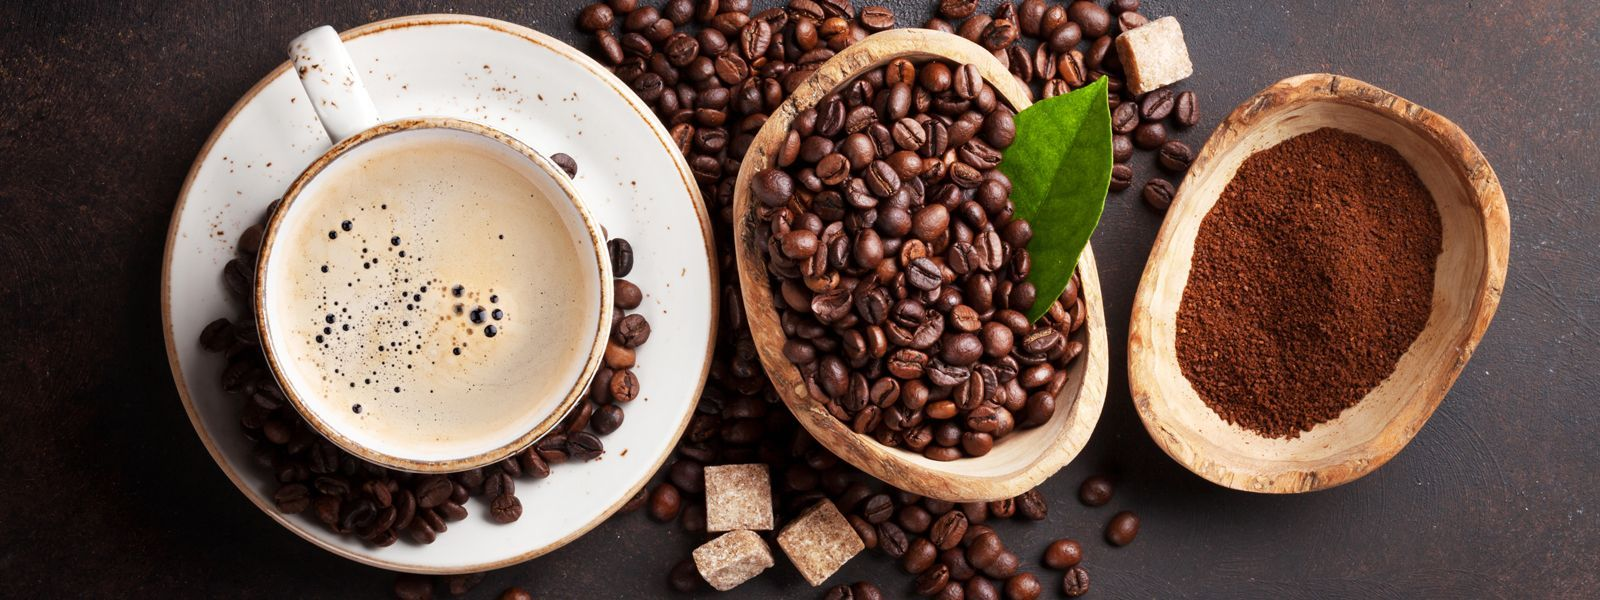 How to Make Your Coffee Healthier?